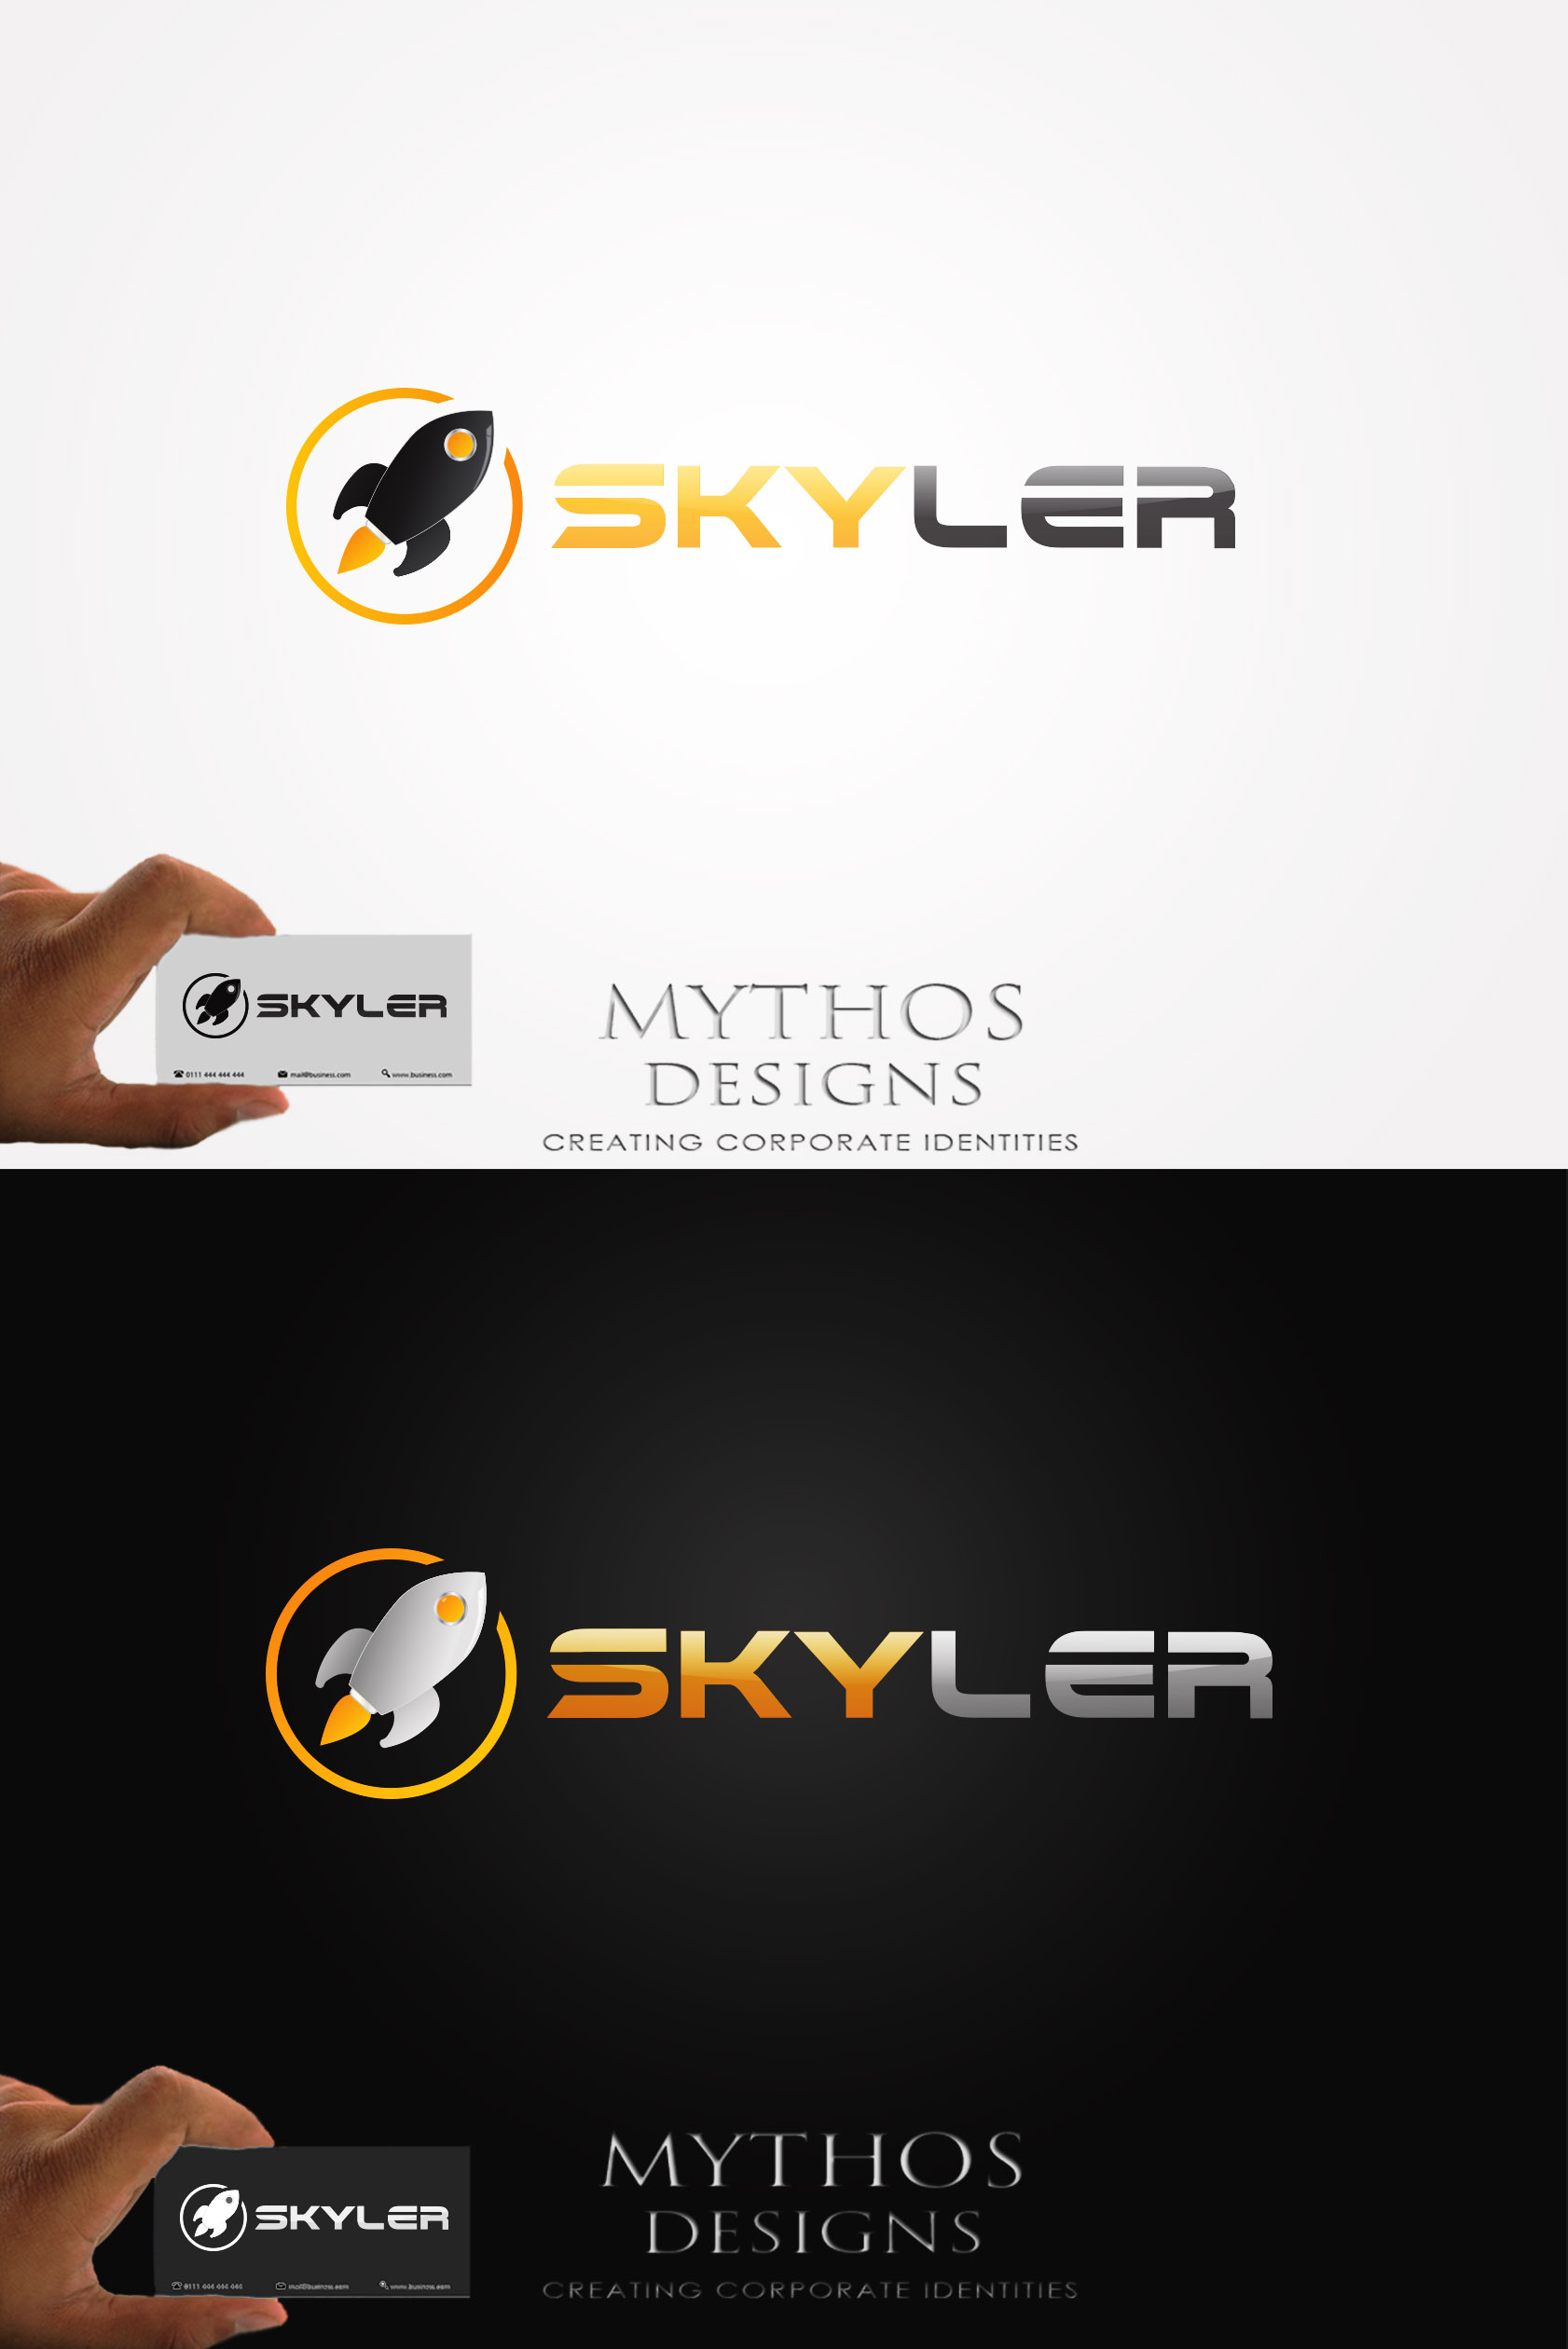 Logo Design by Mythos Designs - Entry No. 240 in the Logo Design Contest Artistic Logo Design for Skyler.Asia.